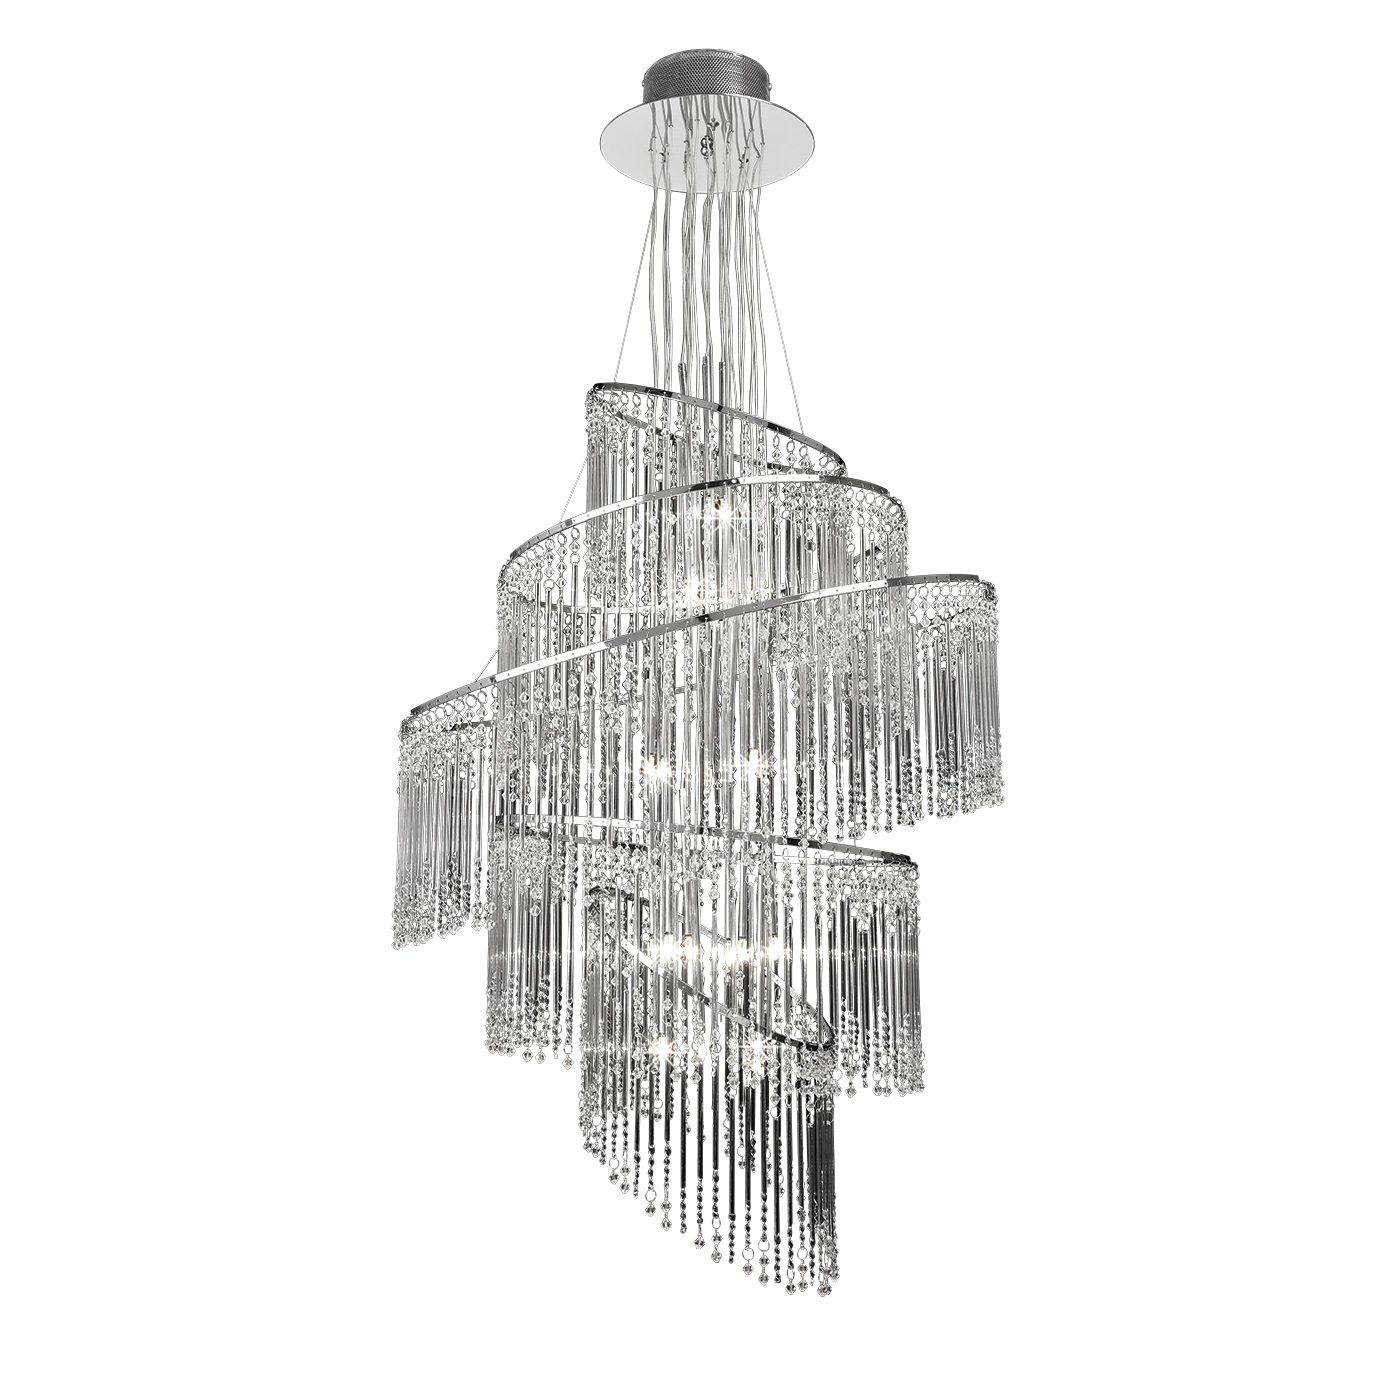 Endon Camille chandelier 24x 10W Clear glass & chrome effect plate Thumbnail 1